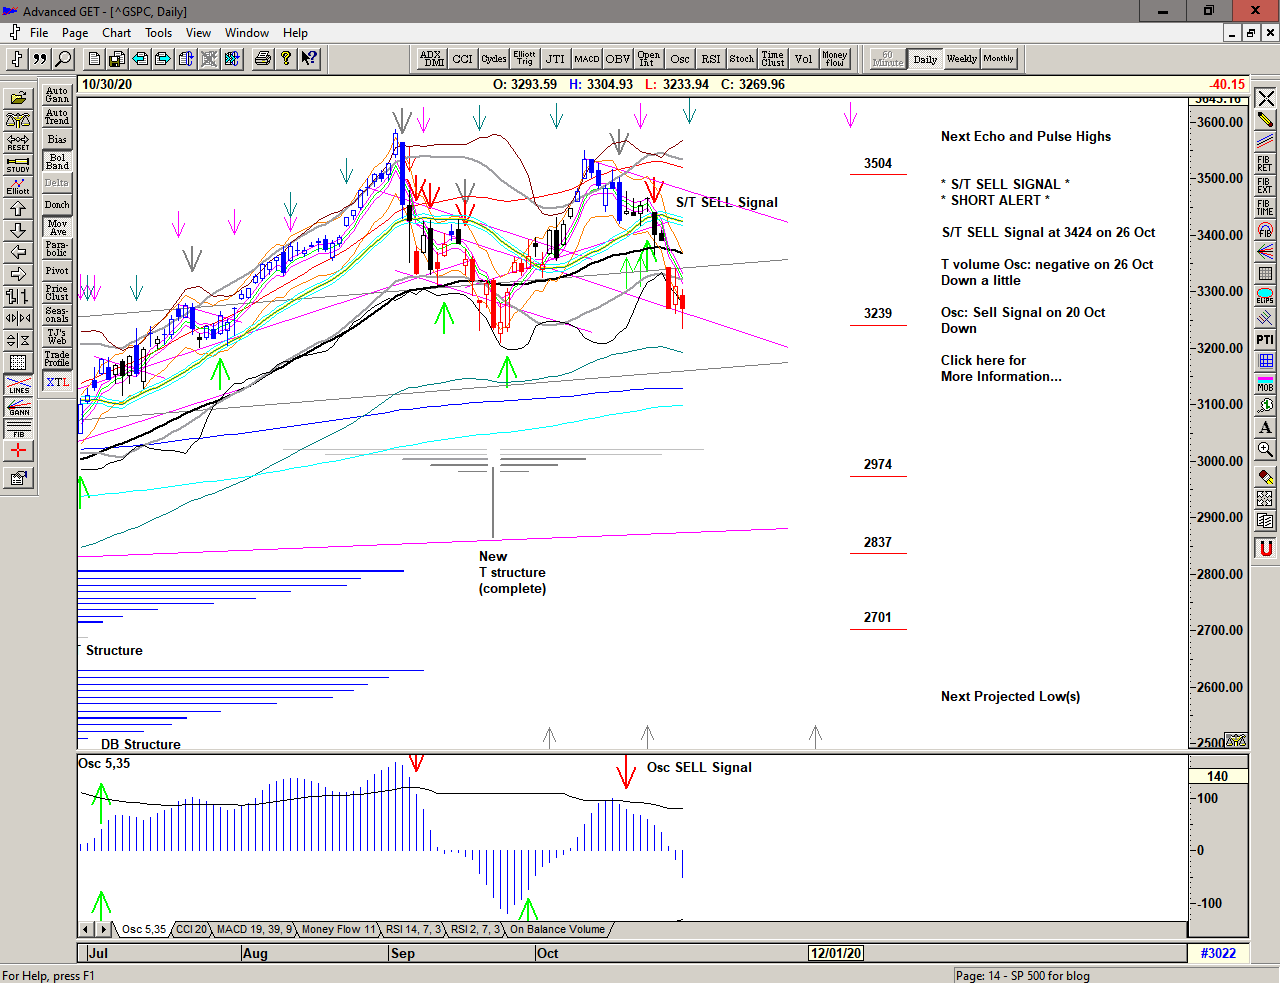 Daily chart of S&P 500 for 31 October 2020